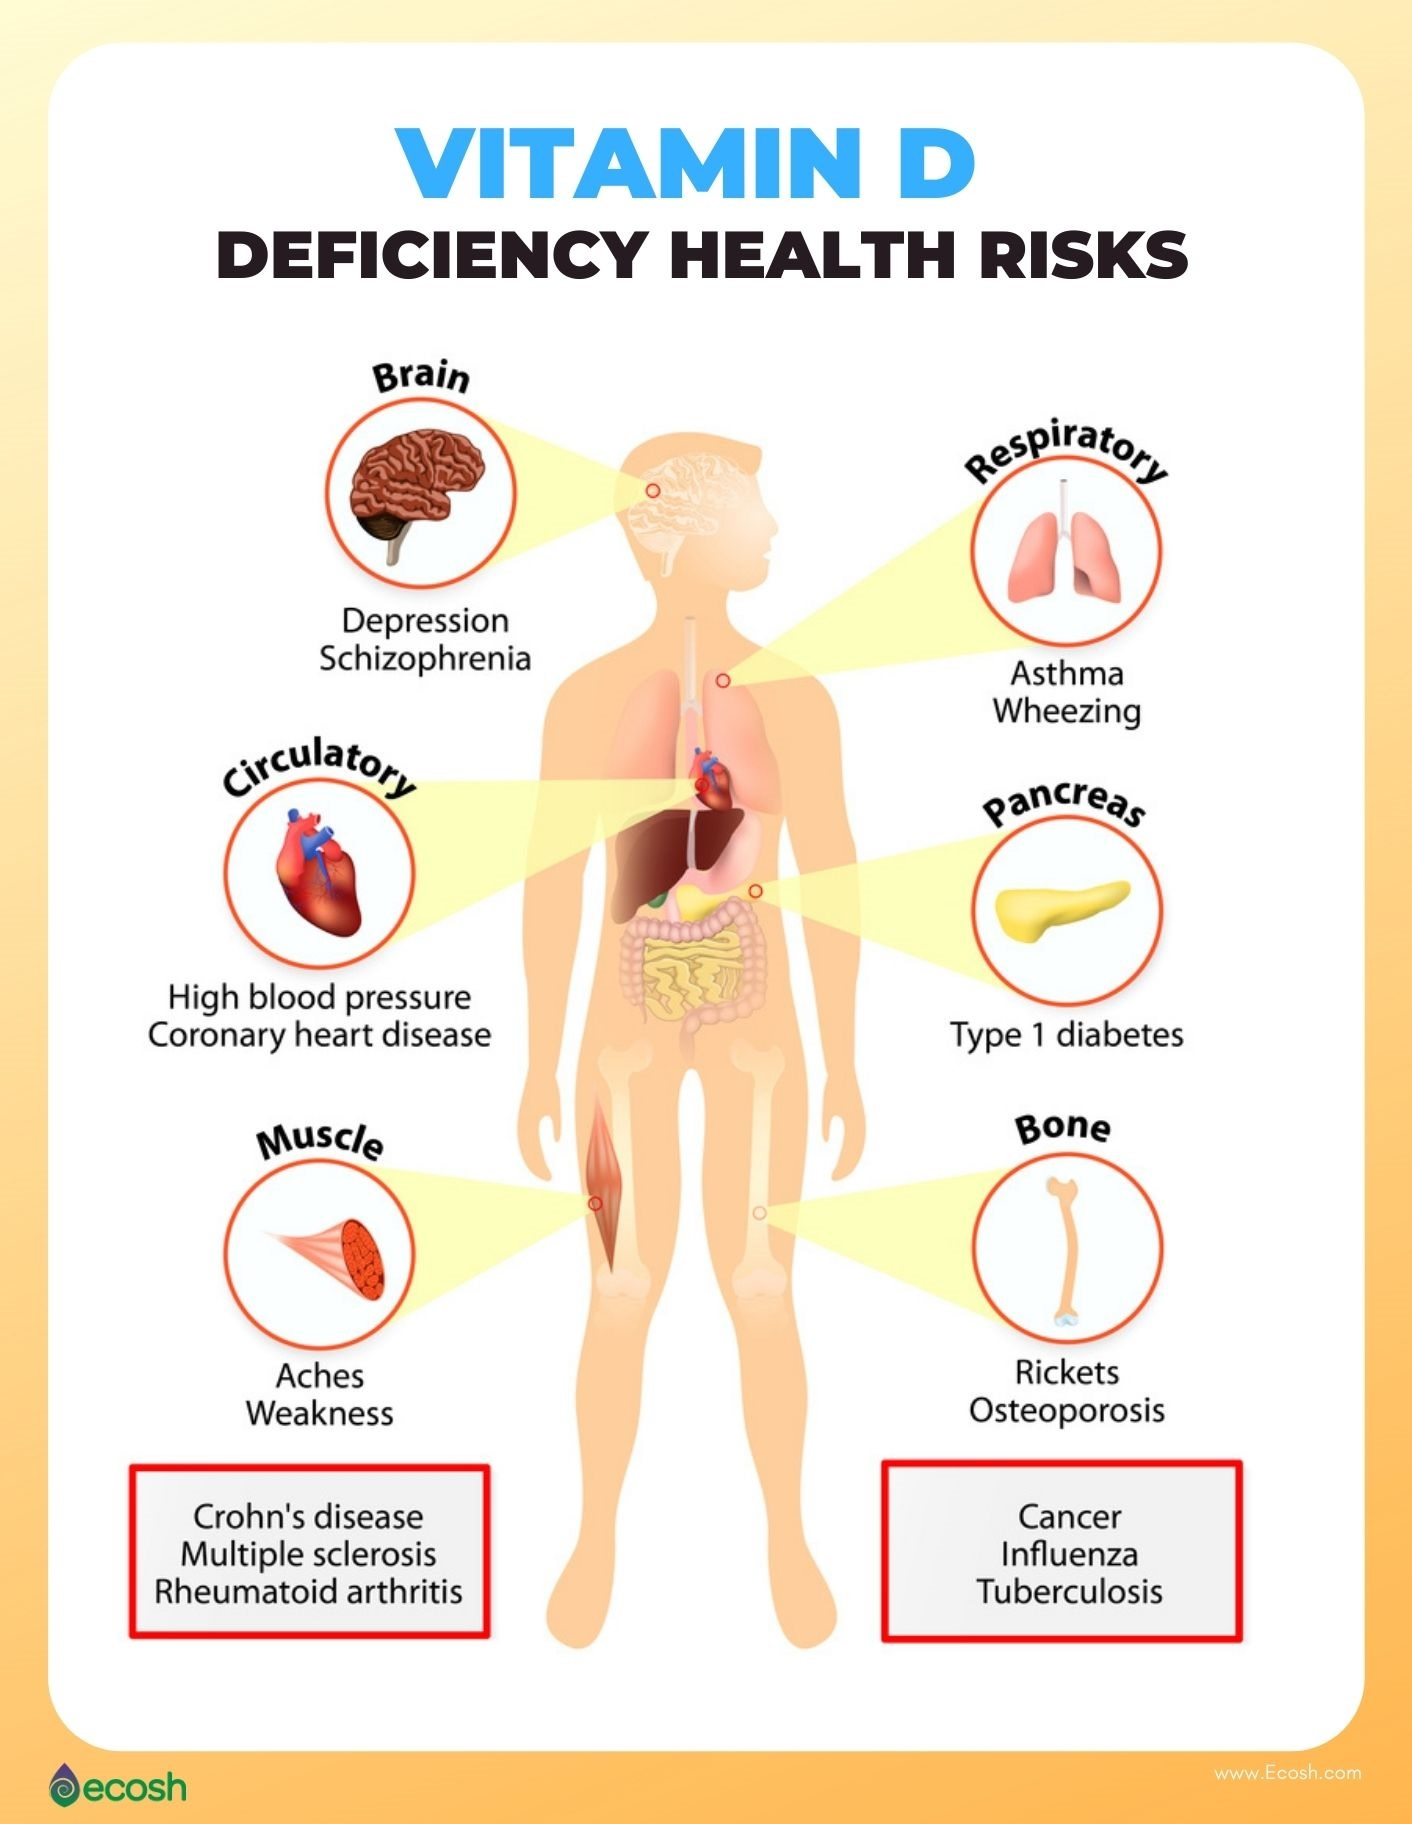 Ecosh_Vitamin_D_Deficiency_Health_Risks_Vitamin_D_Deficiency_Symptoms_Vitamin_D_Deficiency_Signs